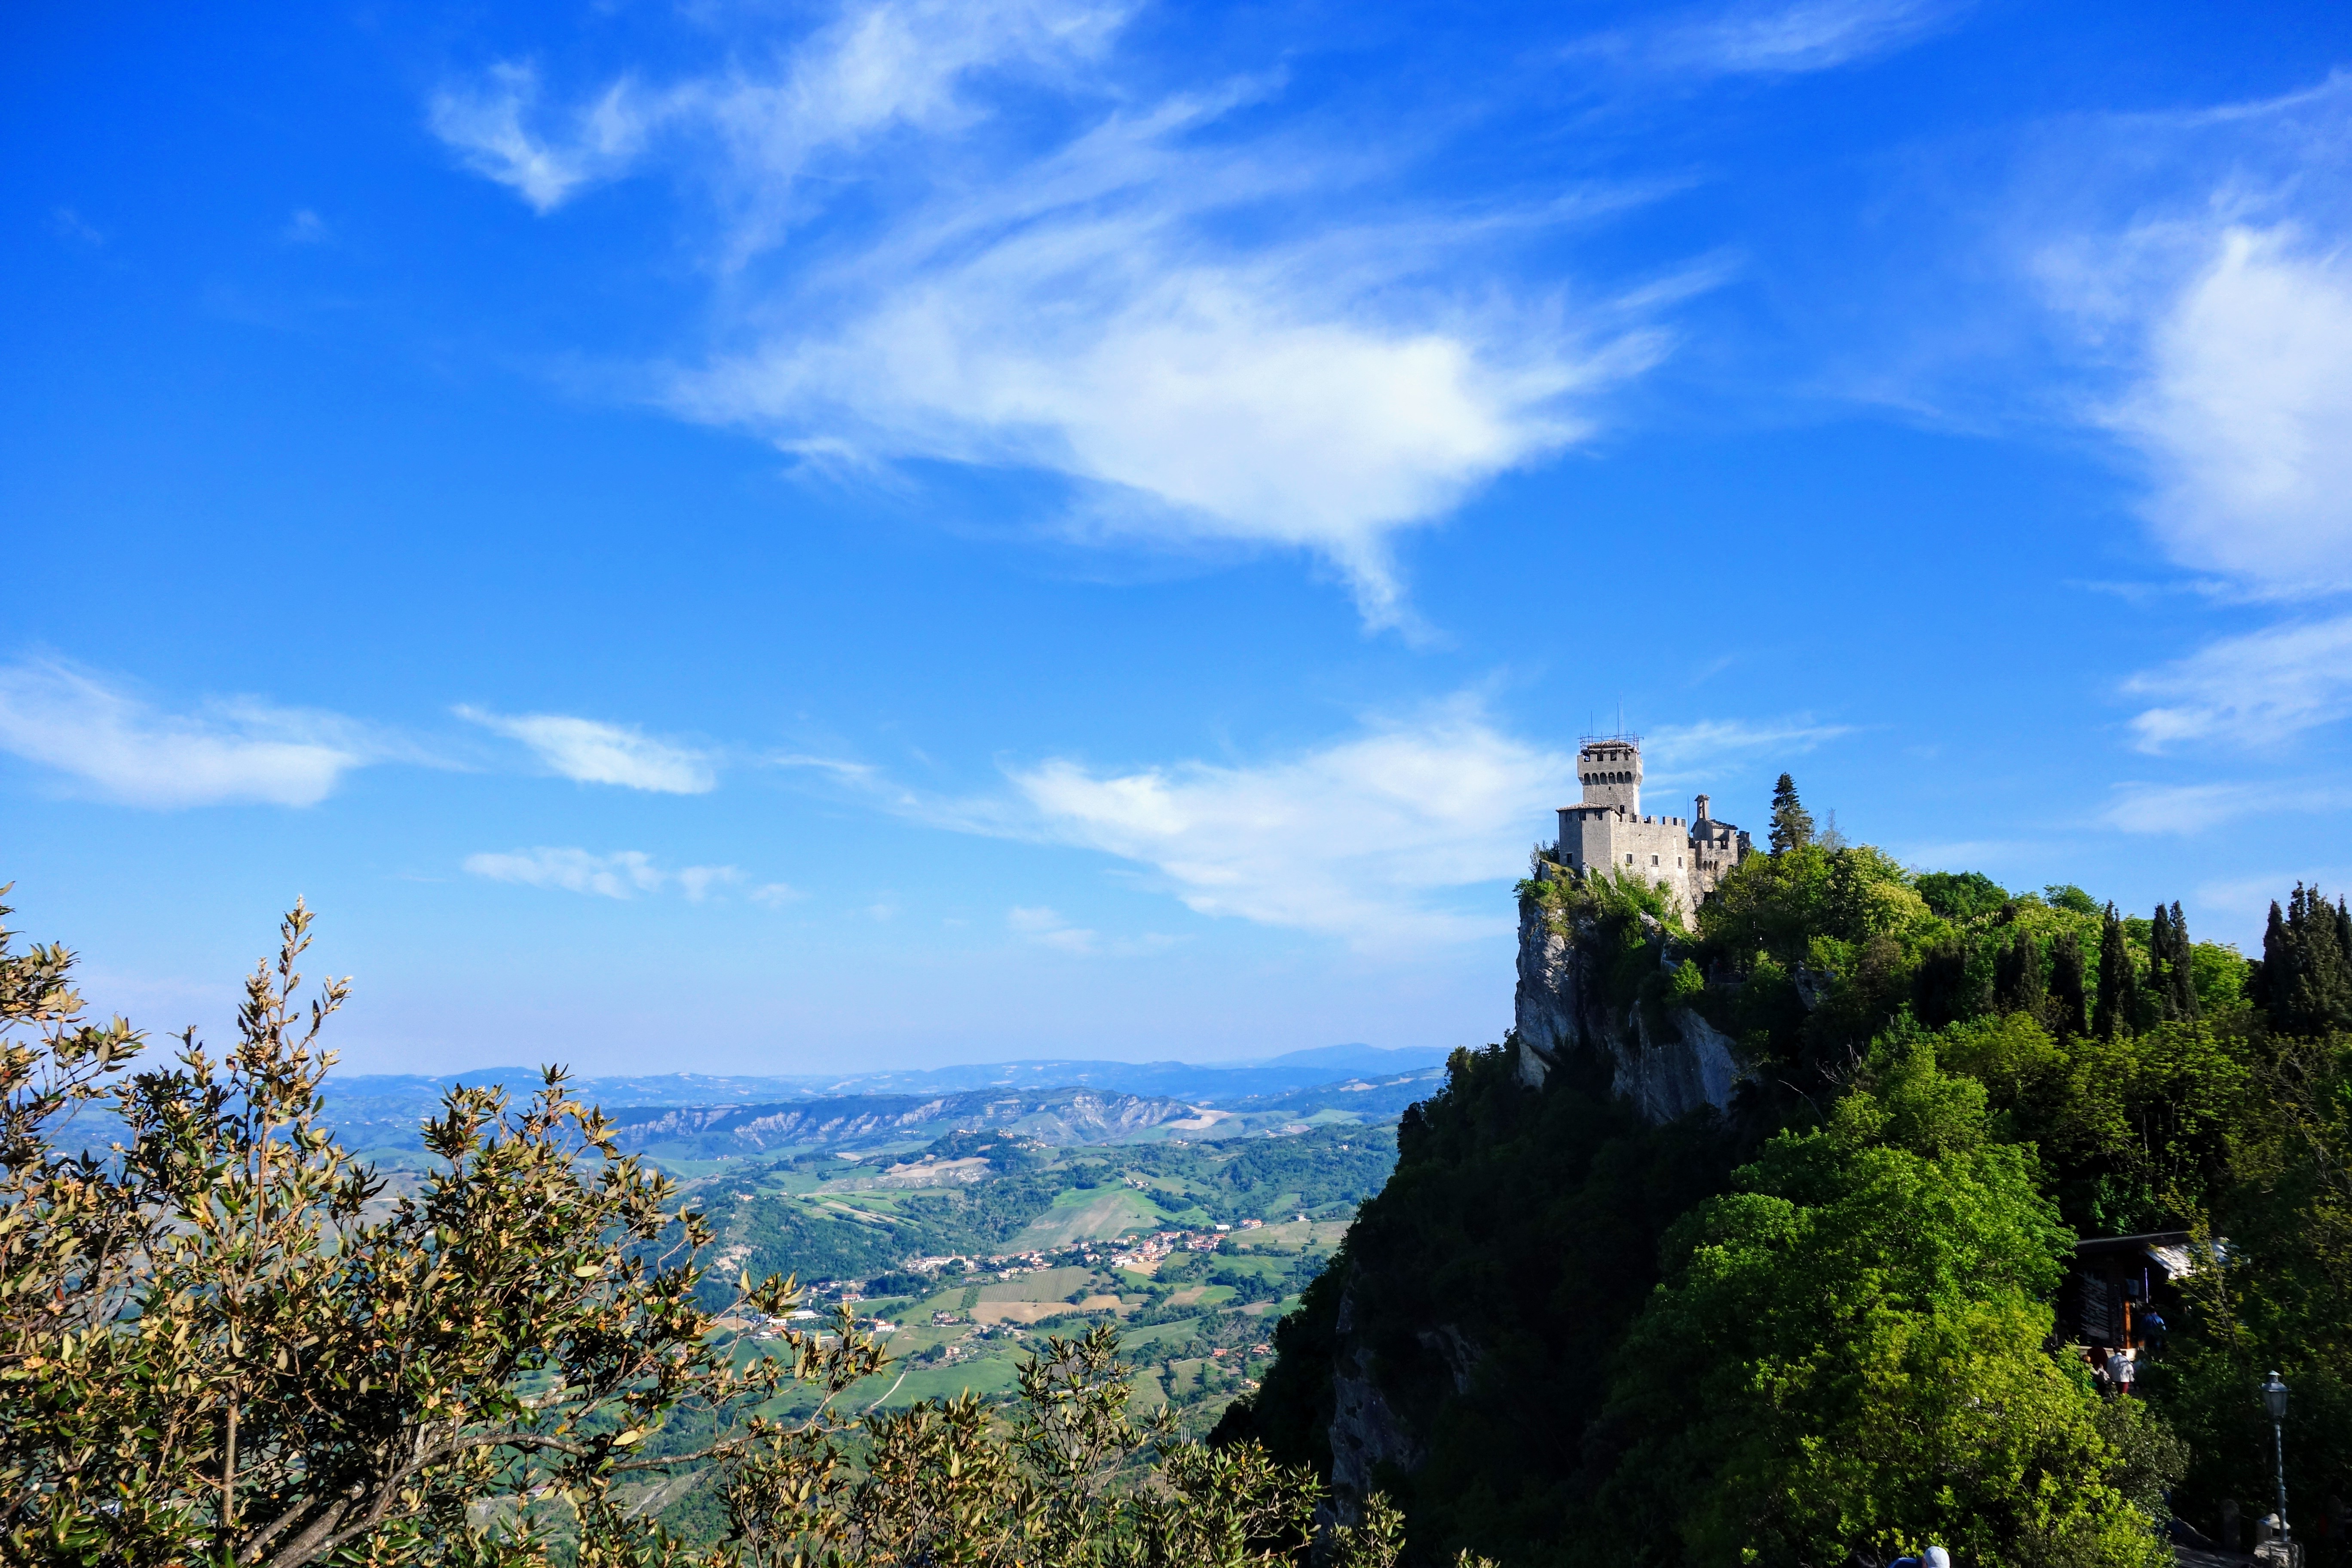 San Marino: History on a Hill 22/48